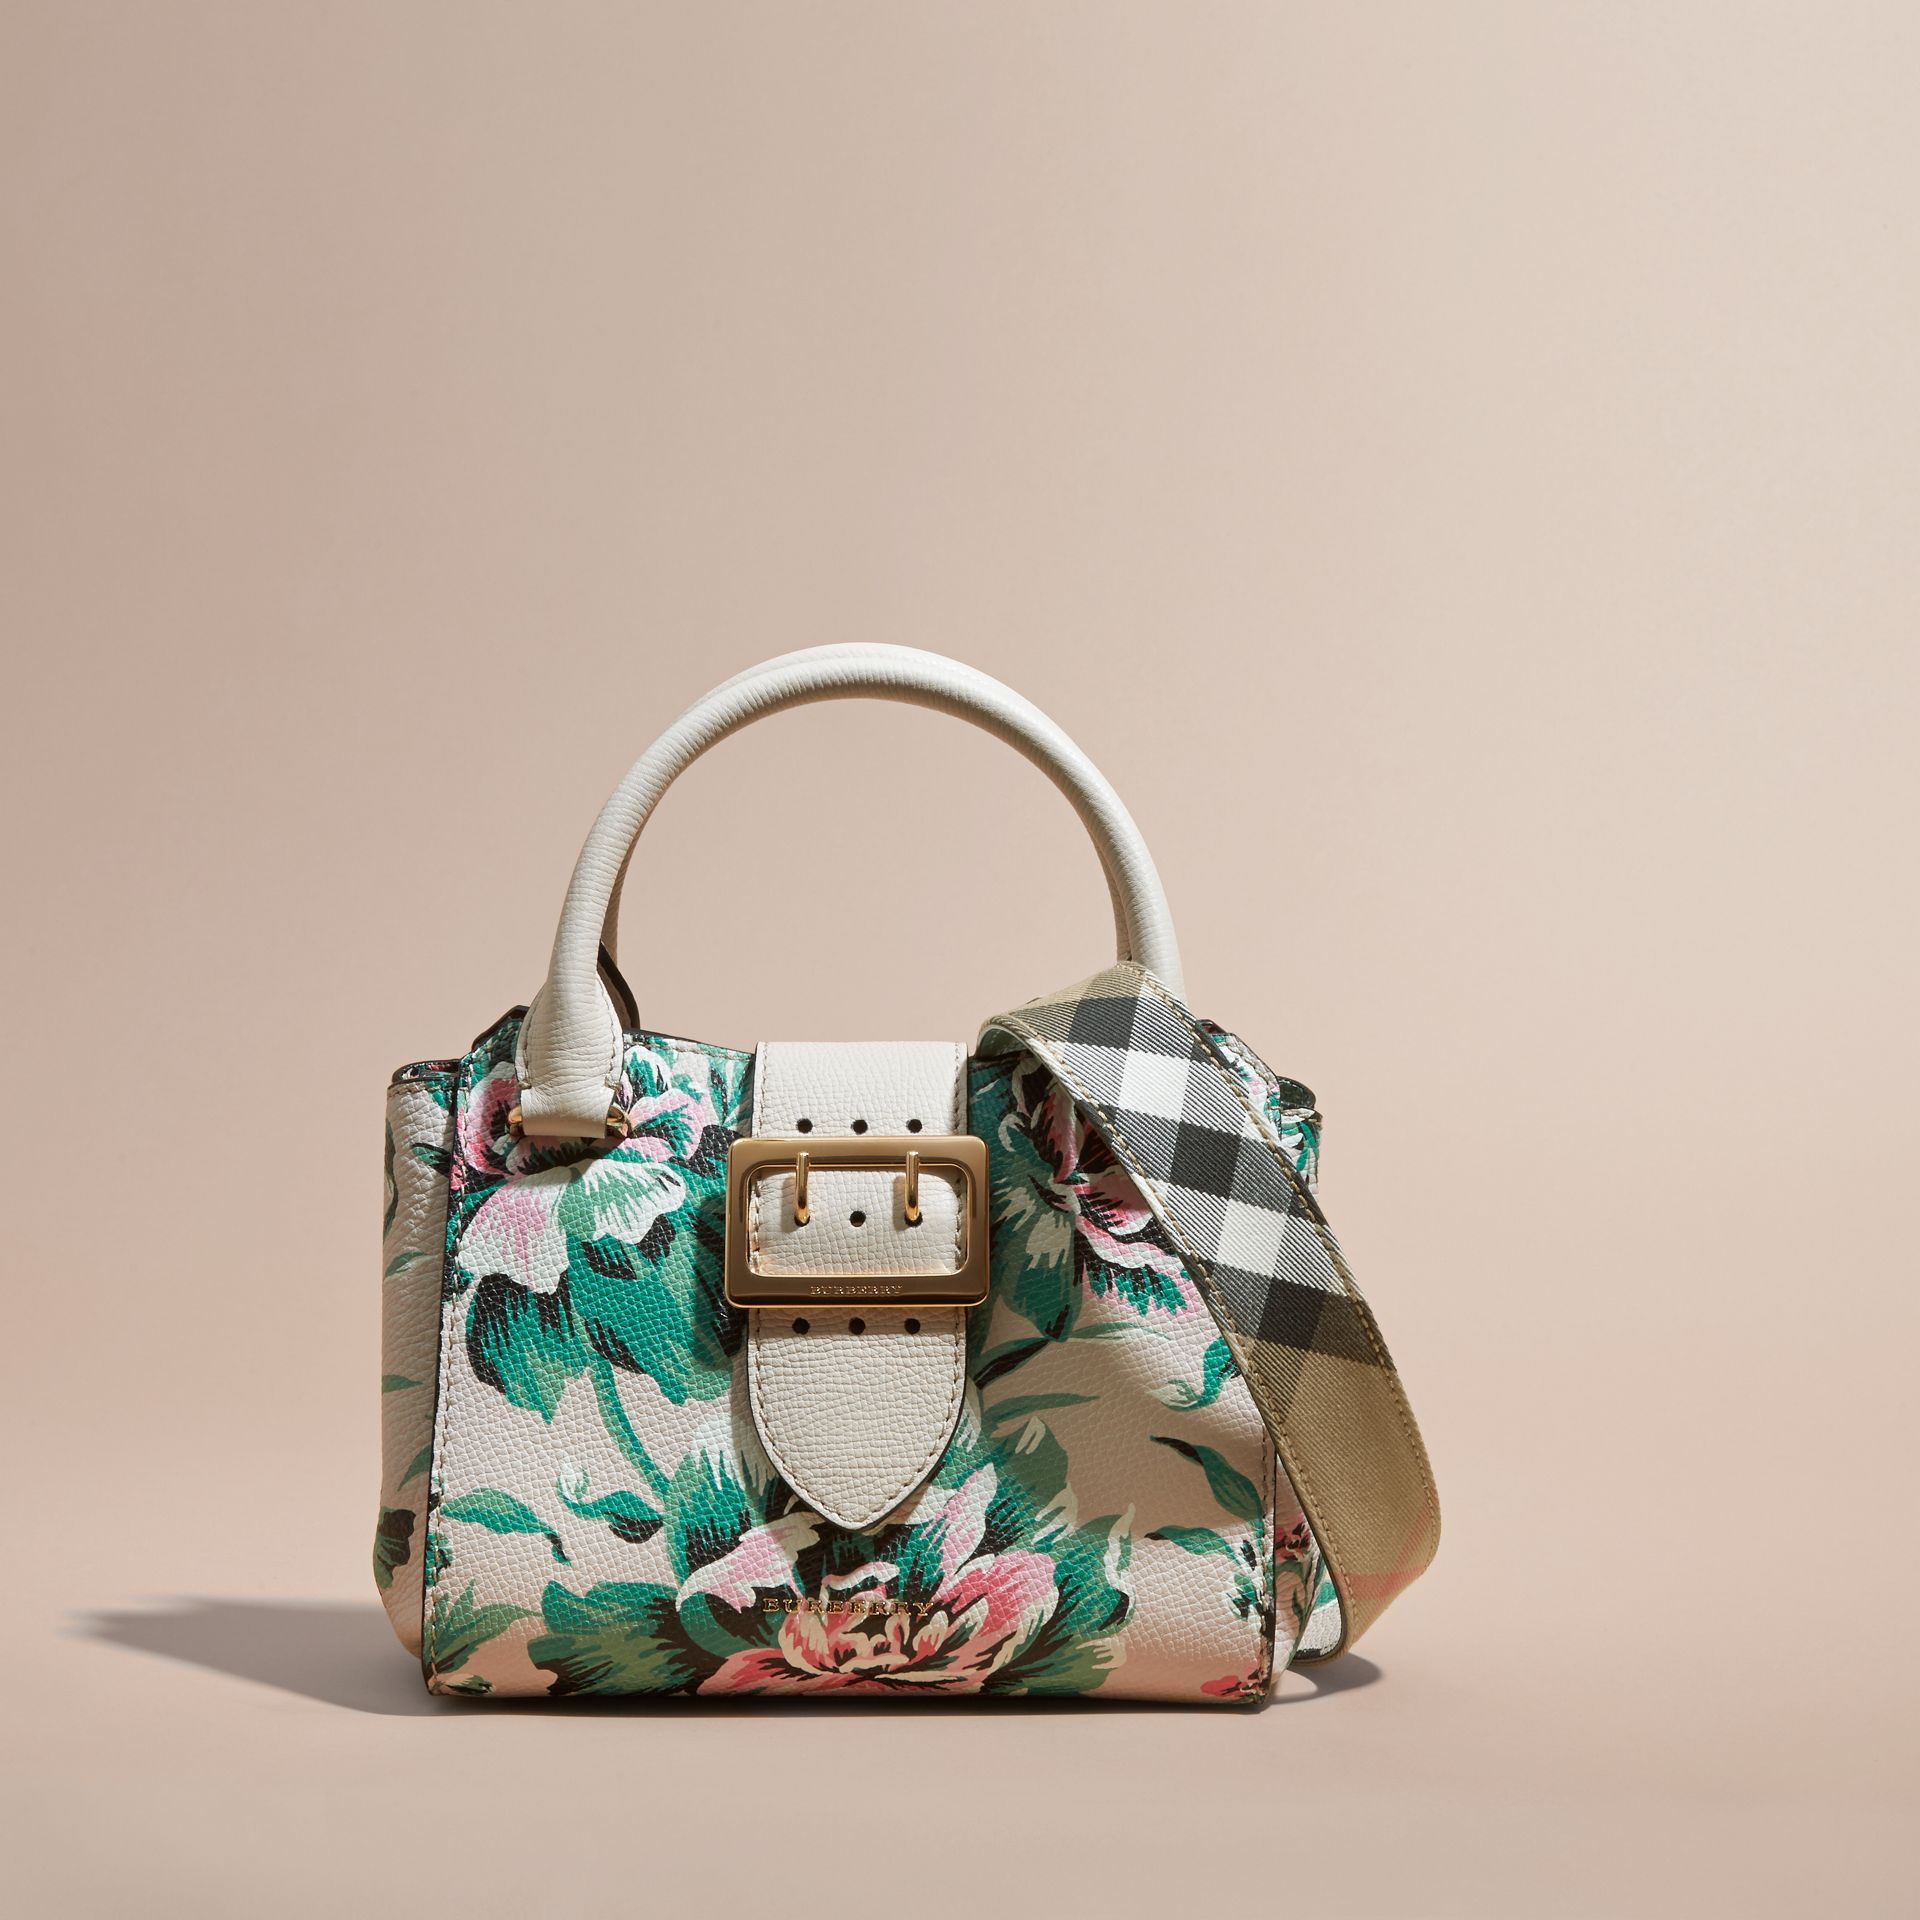 Natural/emerald green The Small Buckle Tote in Peony Rose Print Leather Natural/emerald Green - gallery image 9